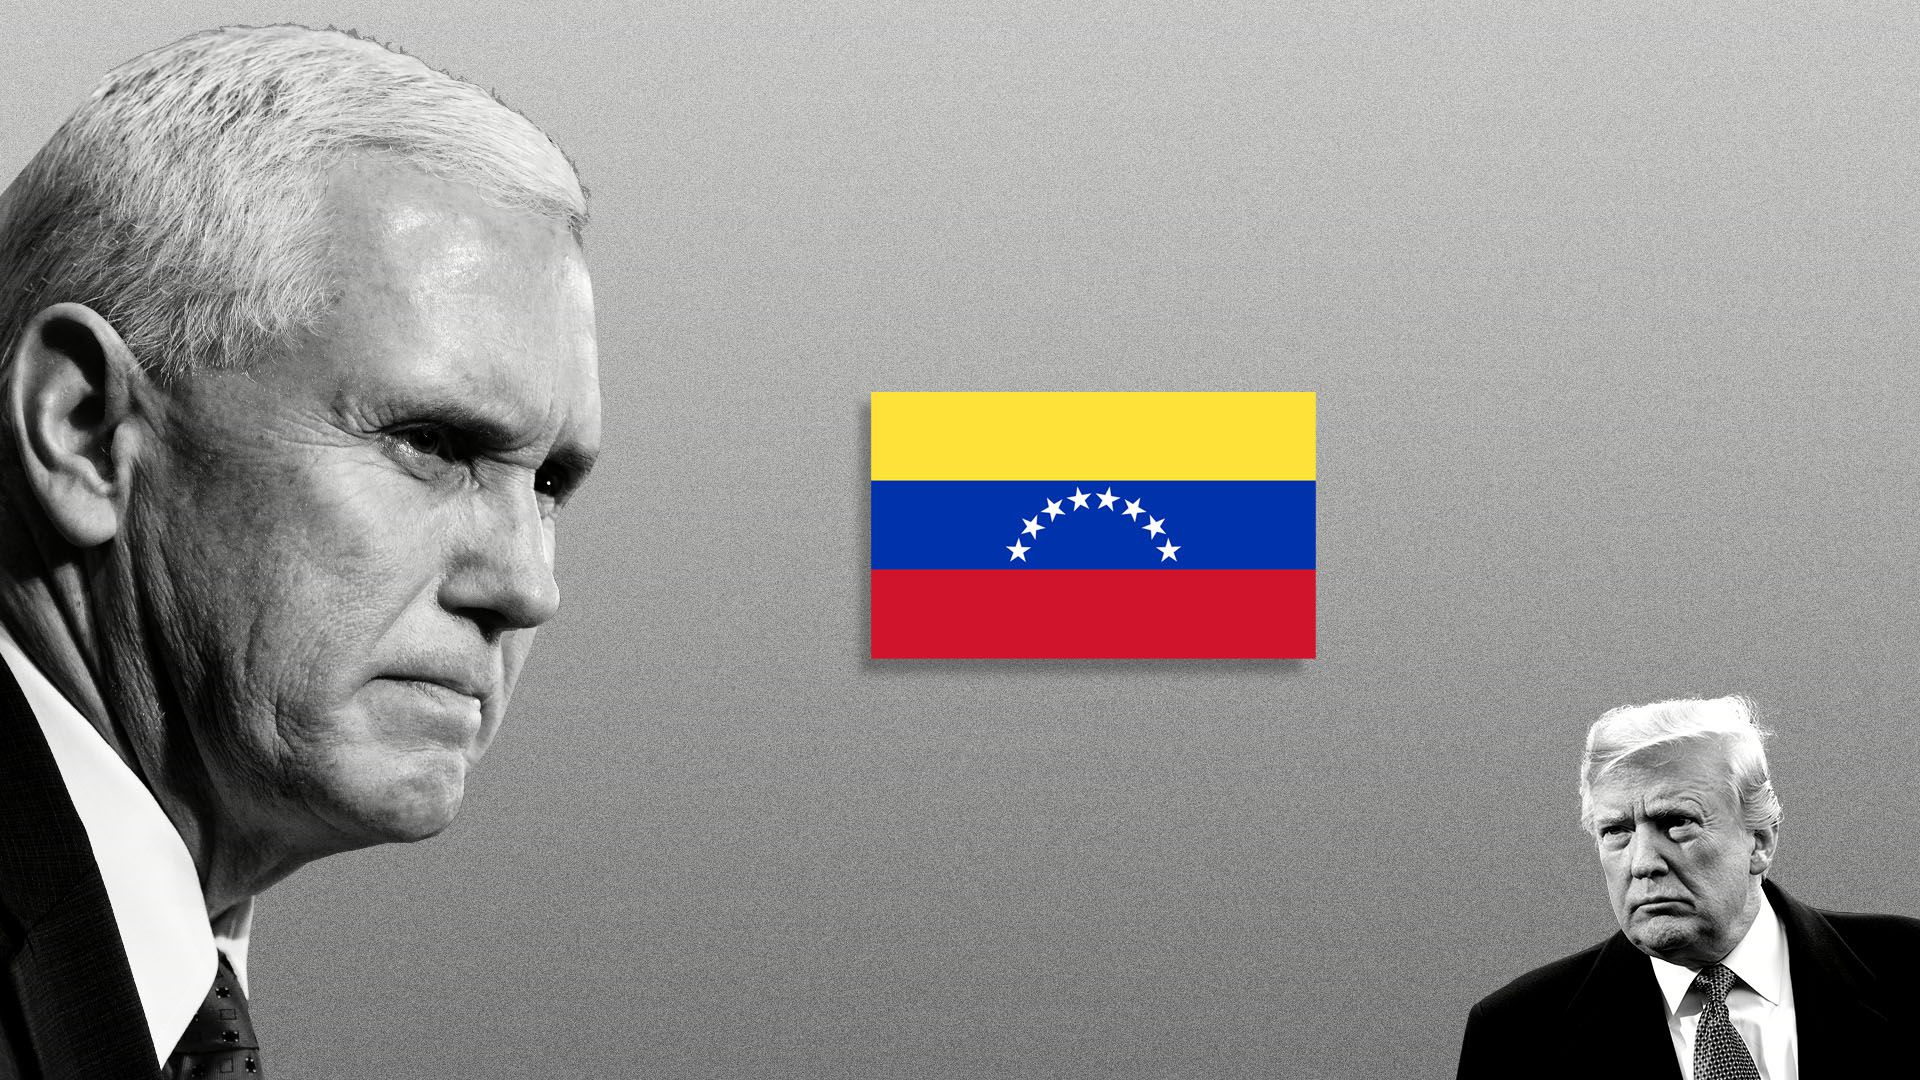 Mike Pence has more foreign policy power than many people realize, especially on Venezuela